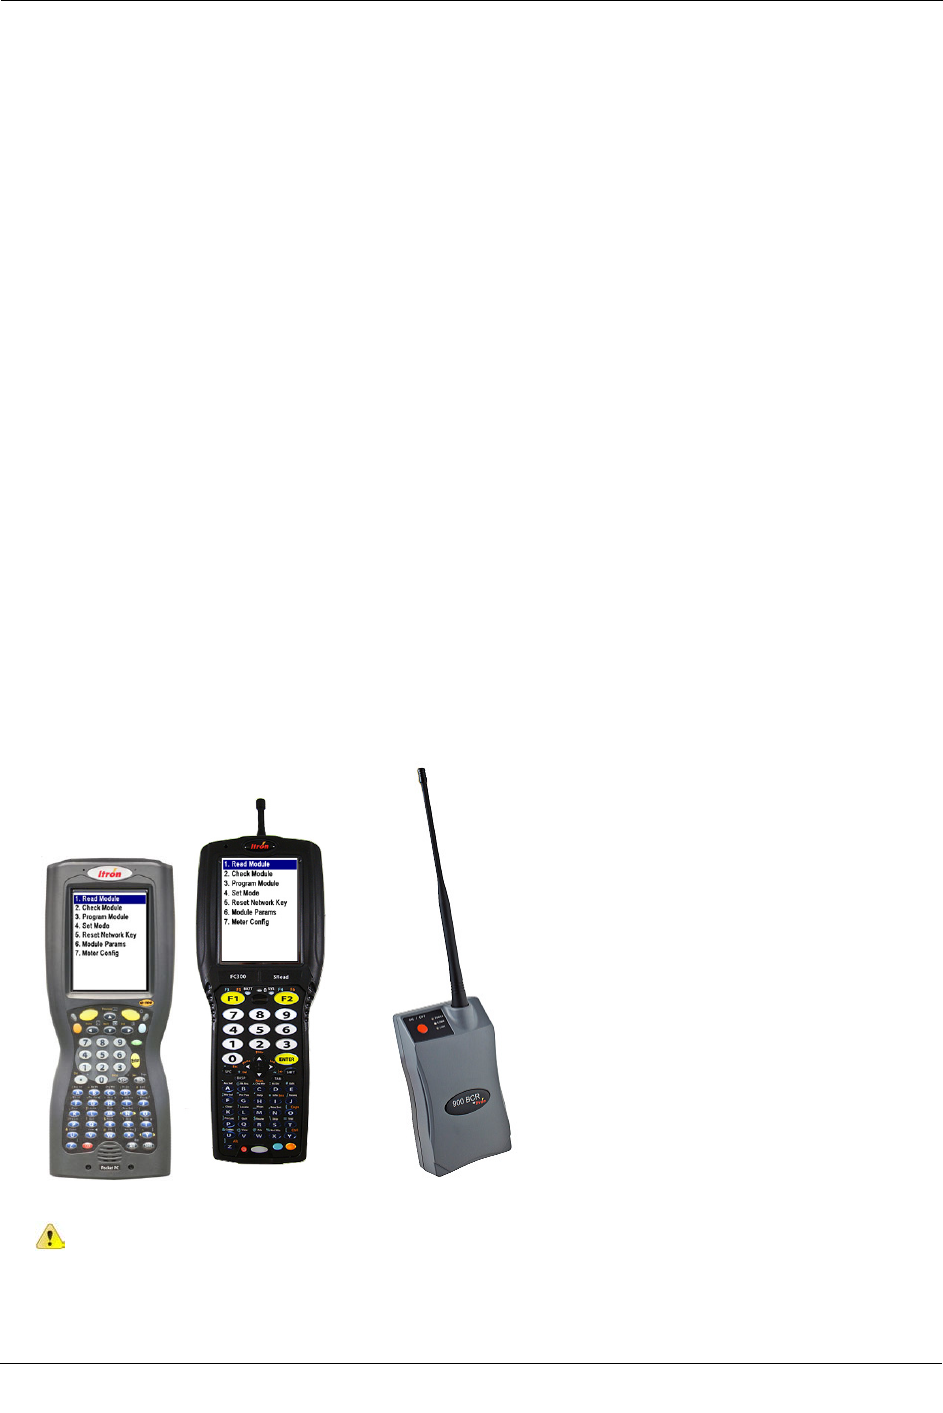 Itron 100GDLBS AMR transceiver device for utility meters